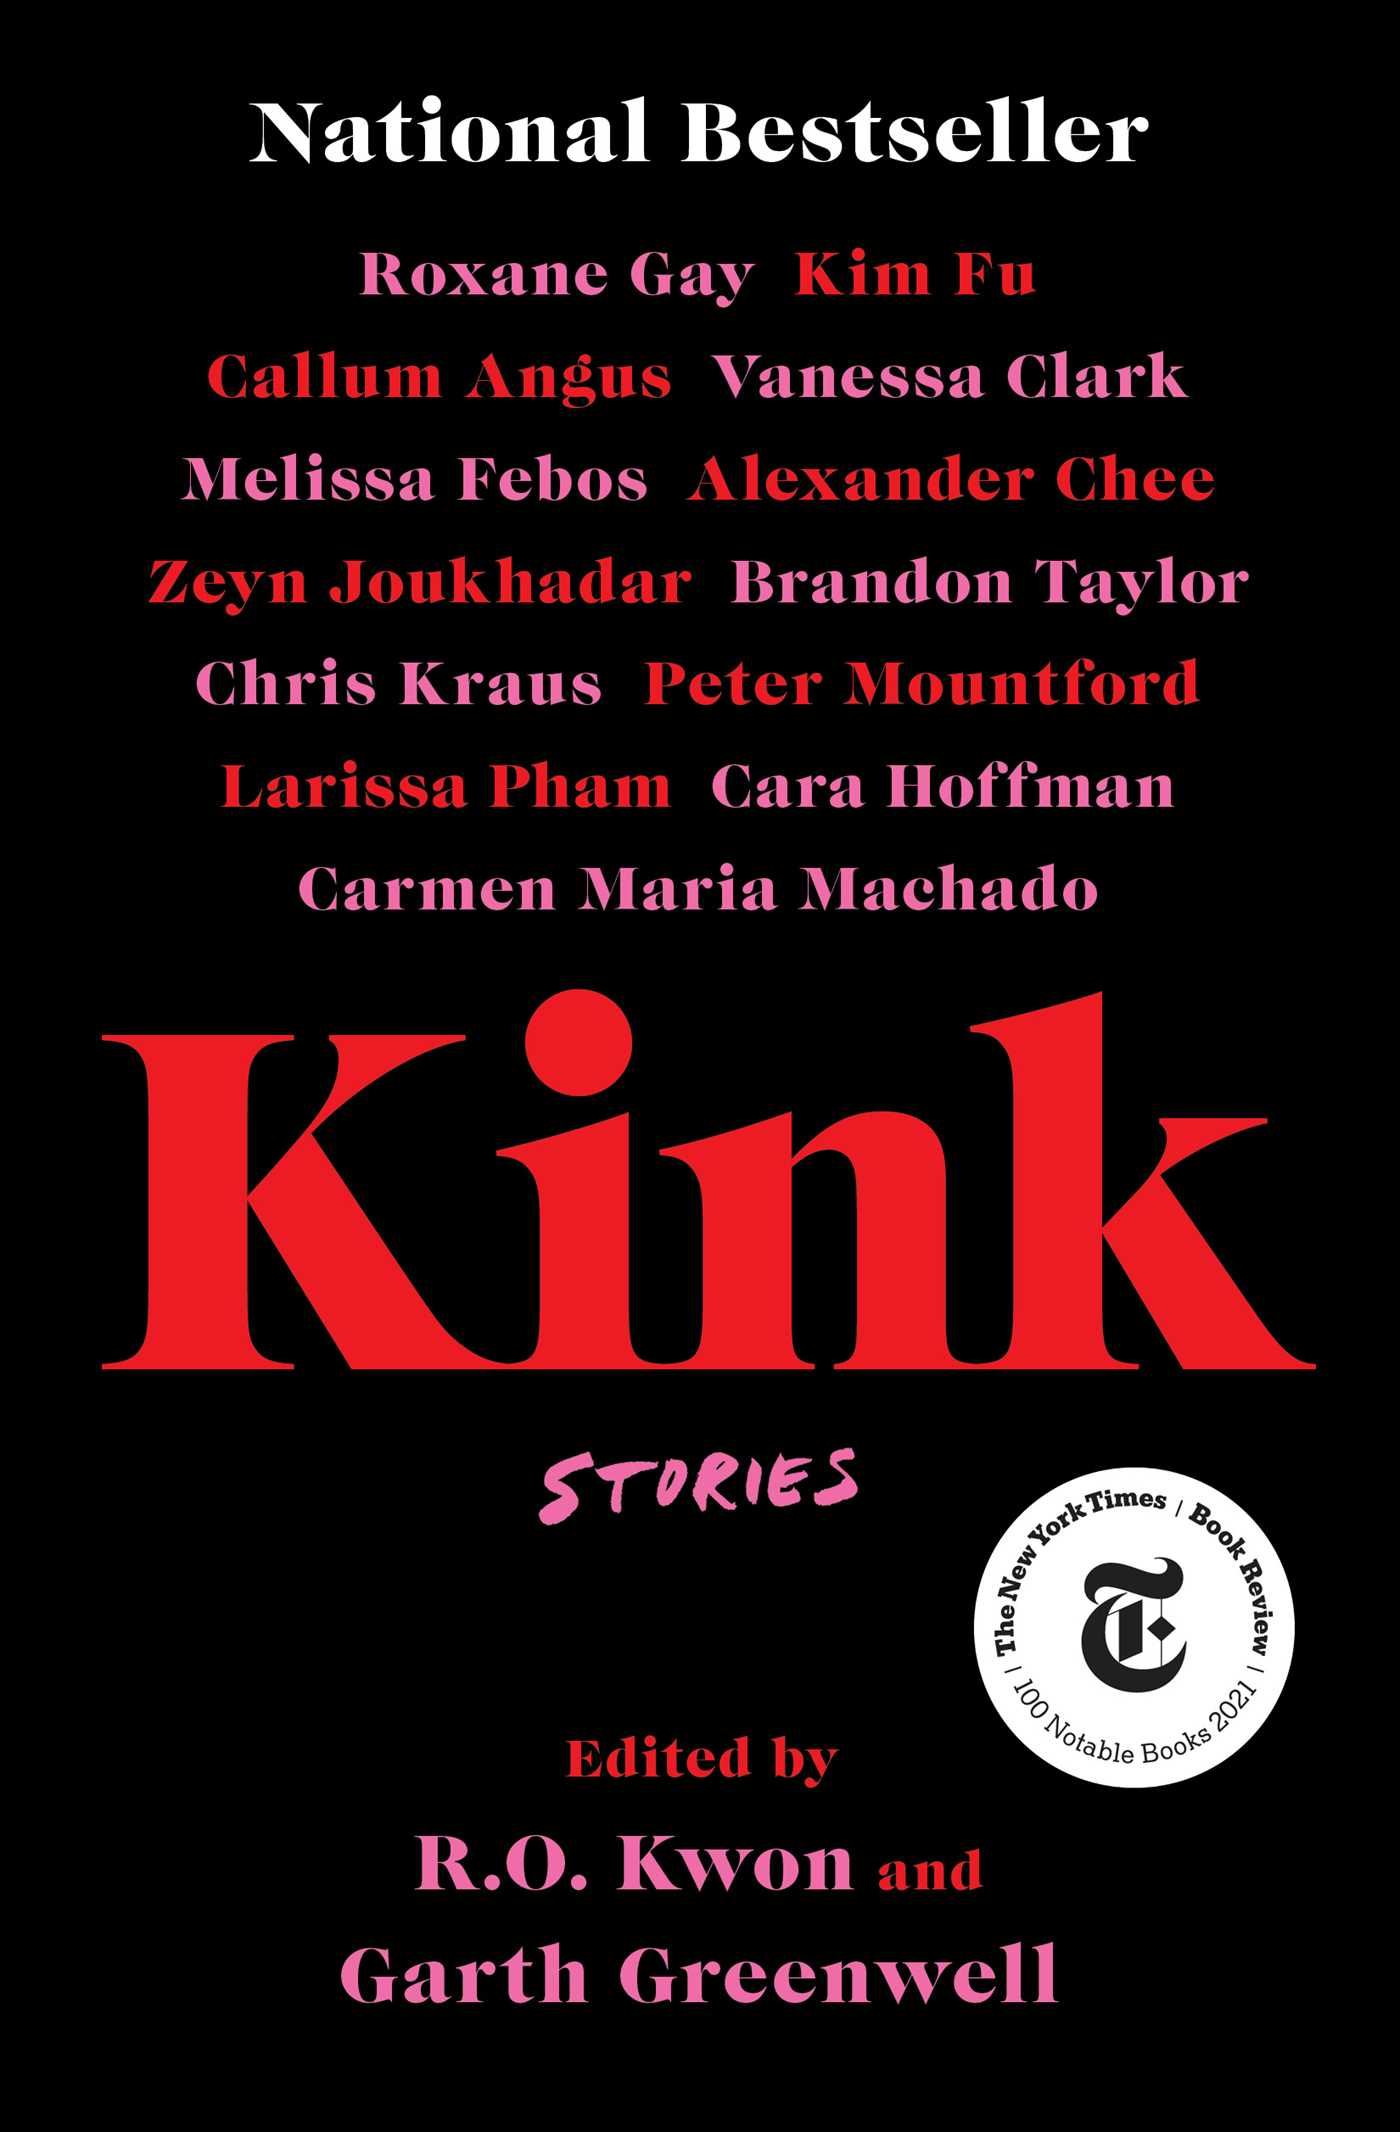 Kink | Book by R.O. Kwon, Garth Greenwell | Official Publisher Page | Simon  & Schuster